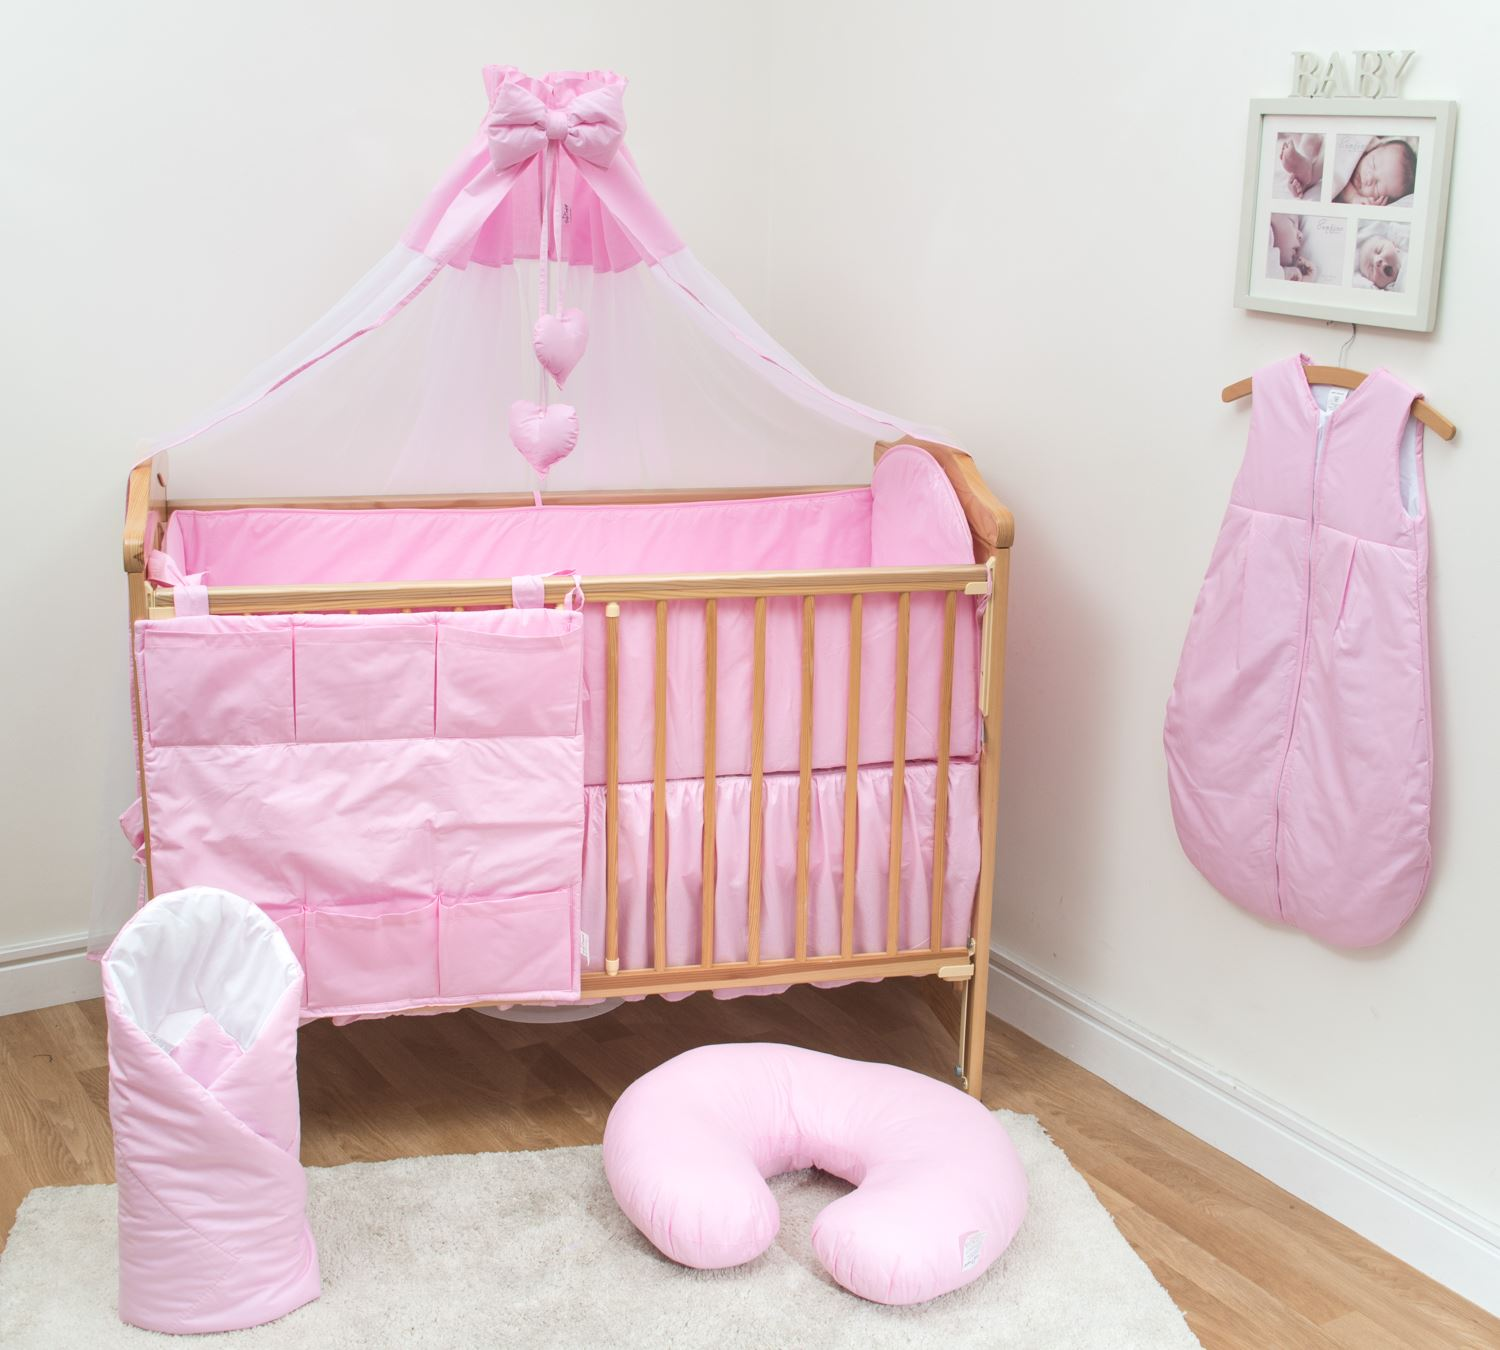 Bad Set For Baby Details About 10 Pc Baby Bedding Set With 4 Sided Bumper Fits 140x70cm Cot Bed Plain Pink